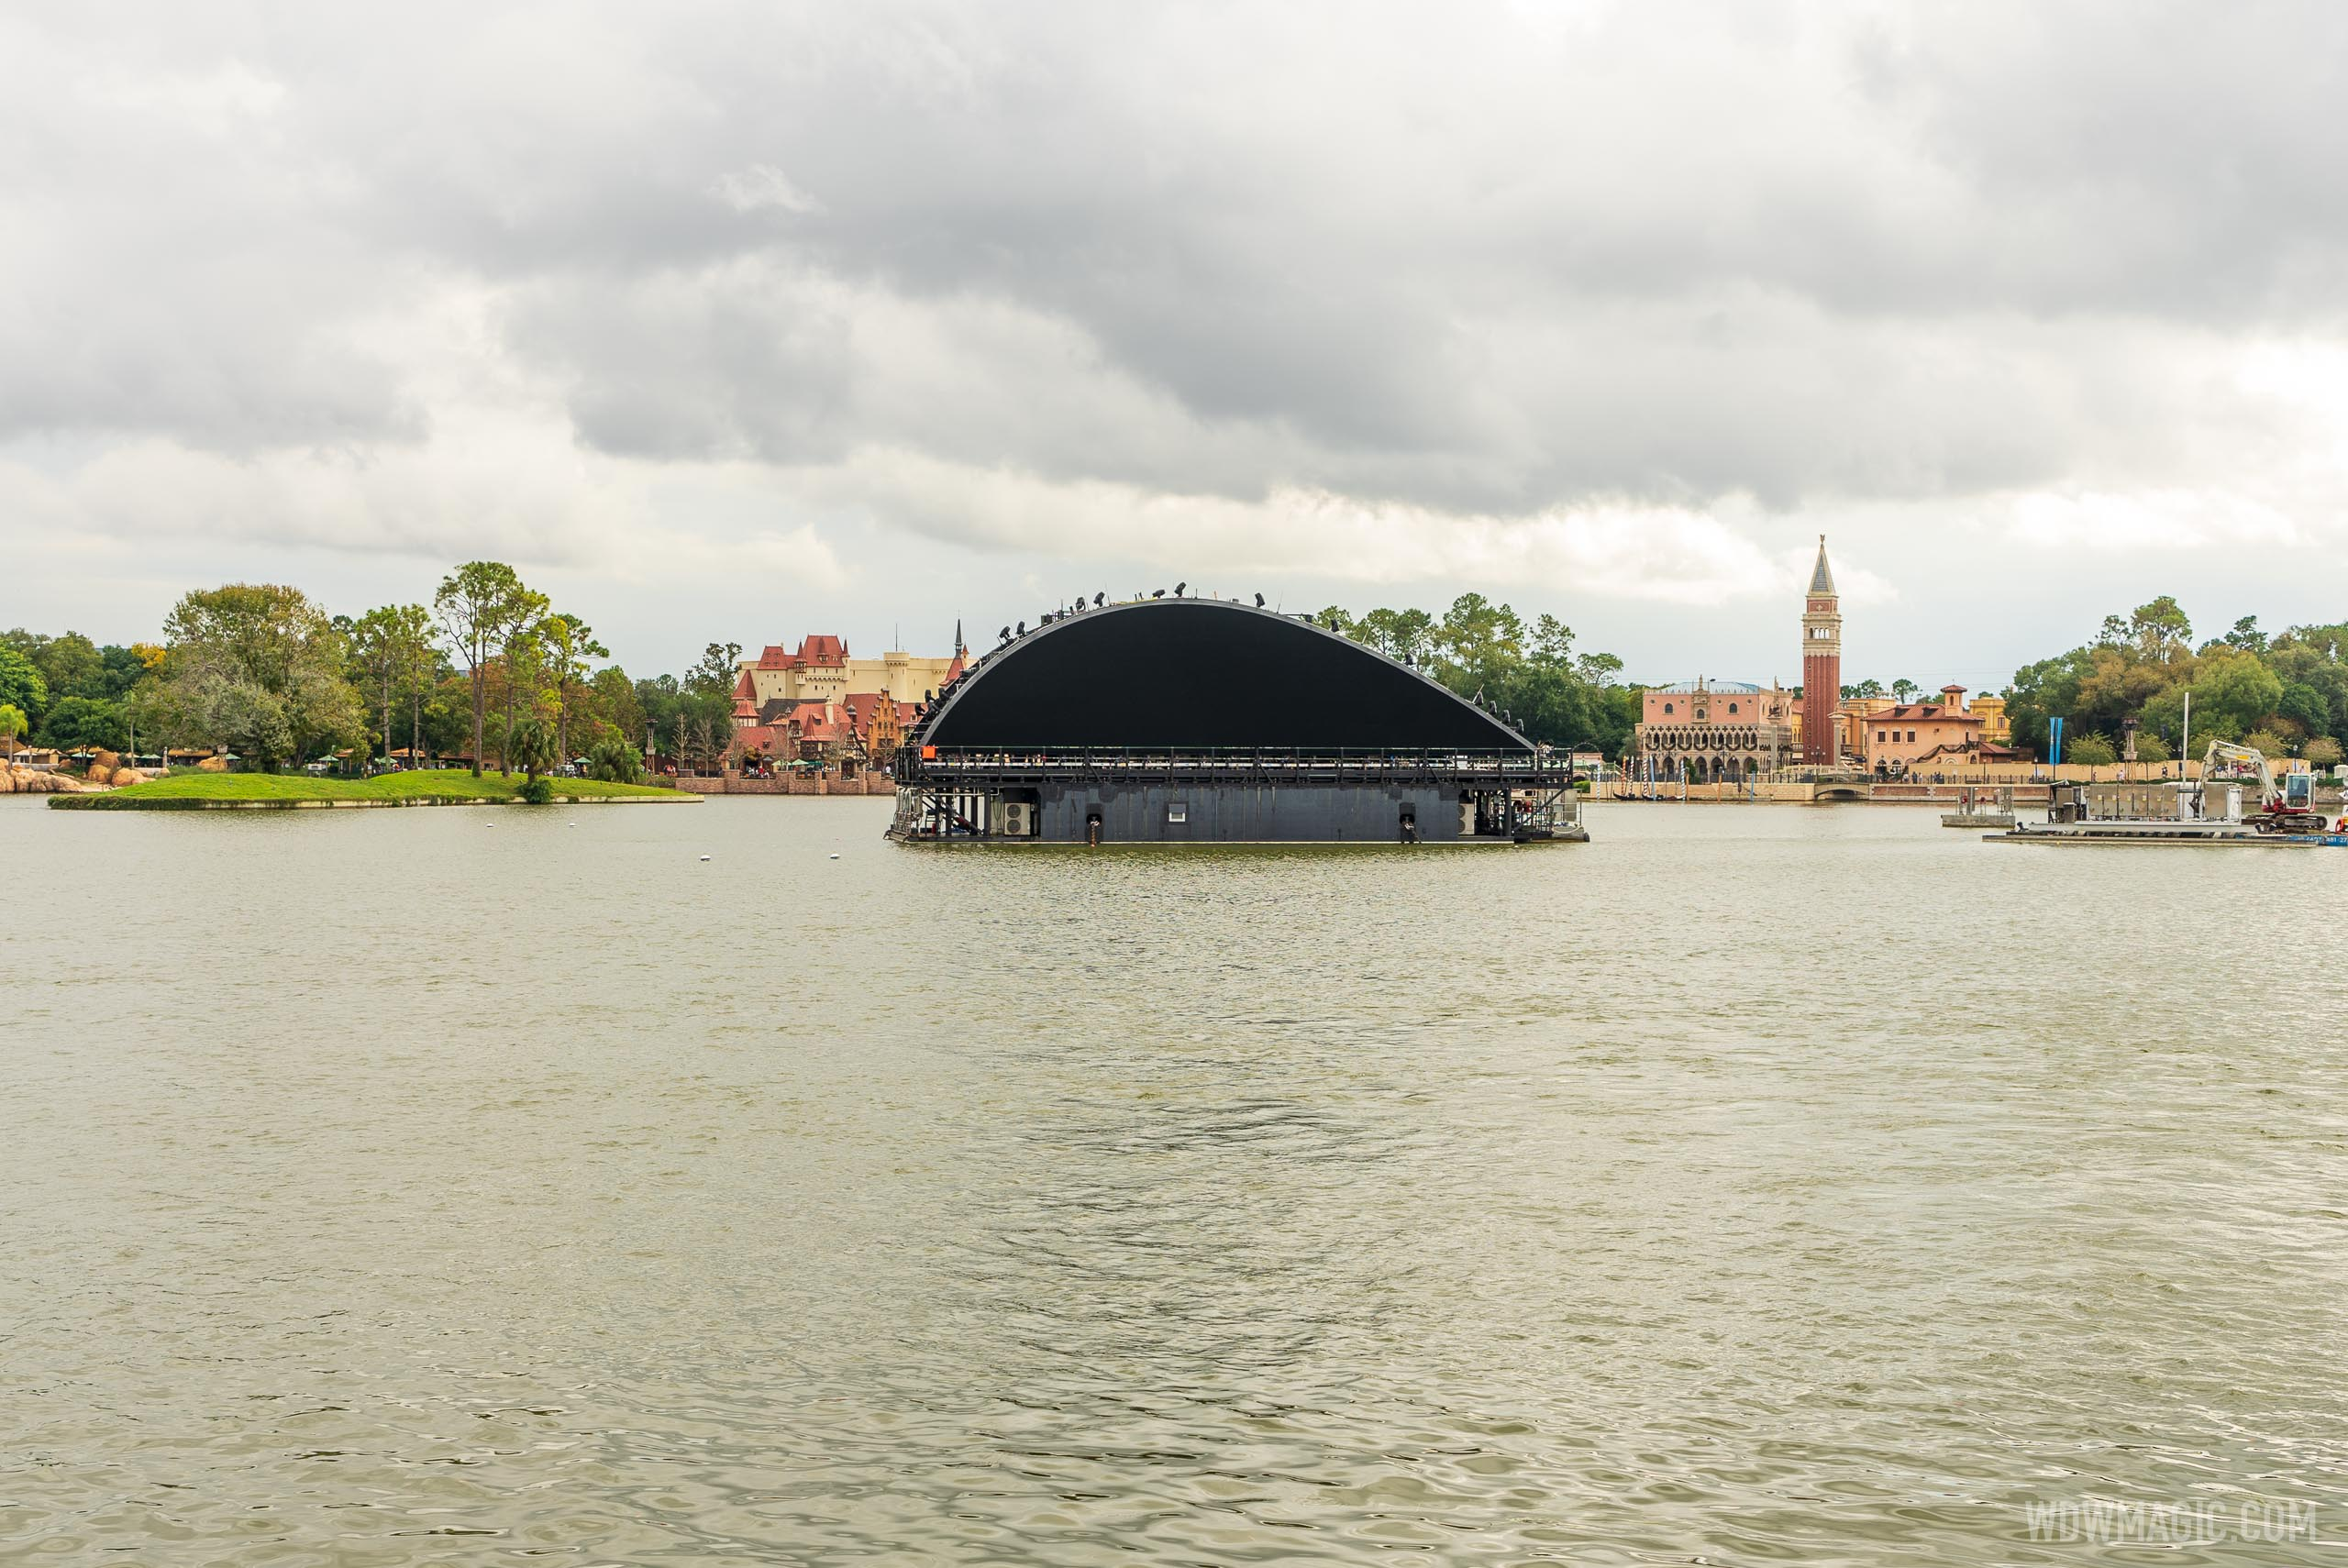 50mm 'Natural view' of the Harmonious show barge on World Showcase Lagoon